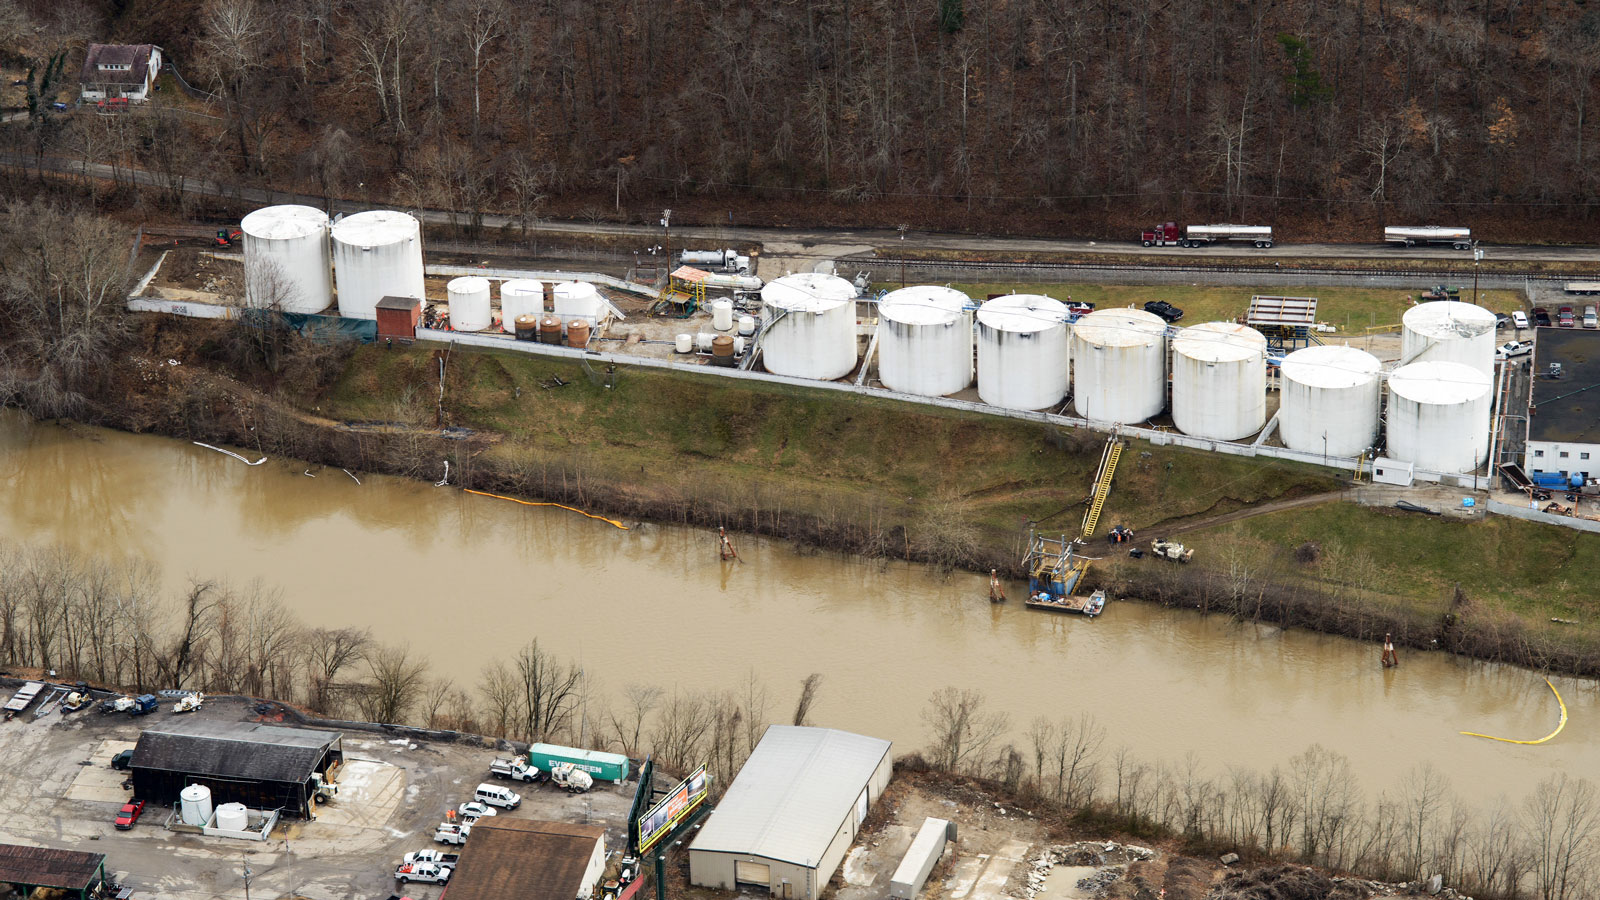 <h4> Industrial chemicals</h4> <h5>A tank rupture at this Freedom Industries plant in West Virginia spilled up to 7,500 gallons of the chemical MCHM into the Elk River, poisoning residents and interrupting the water supply of 300,000 people.</h5><em>U.S. Chemical Safety Board</em>